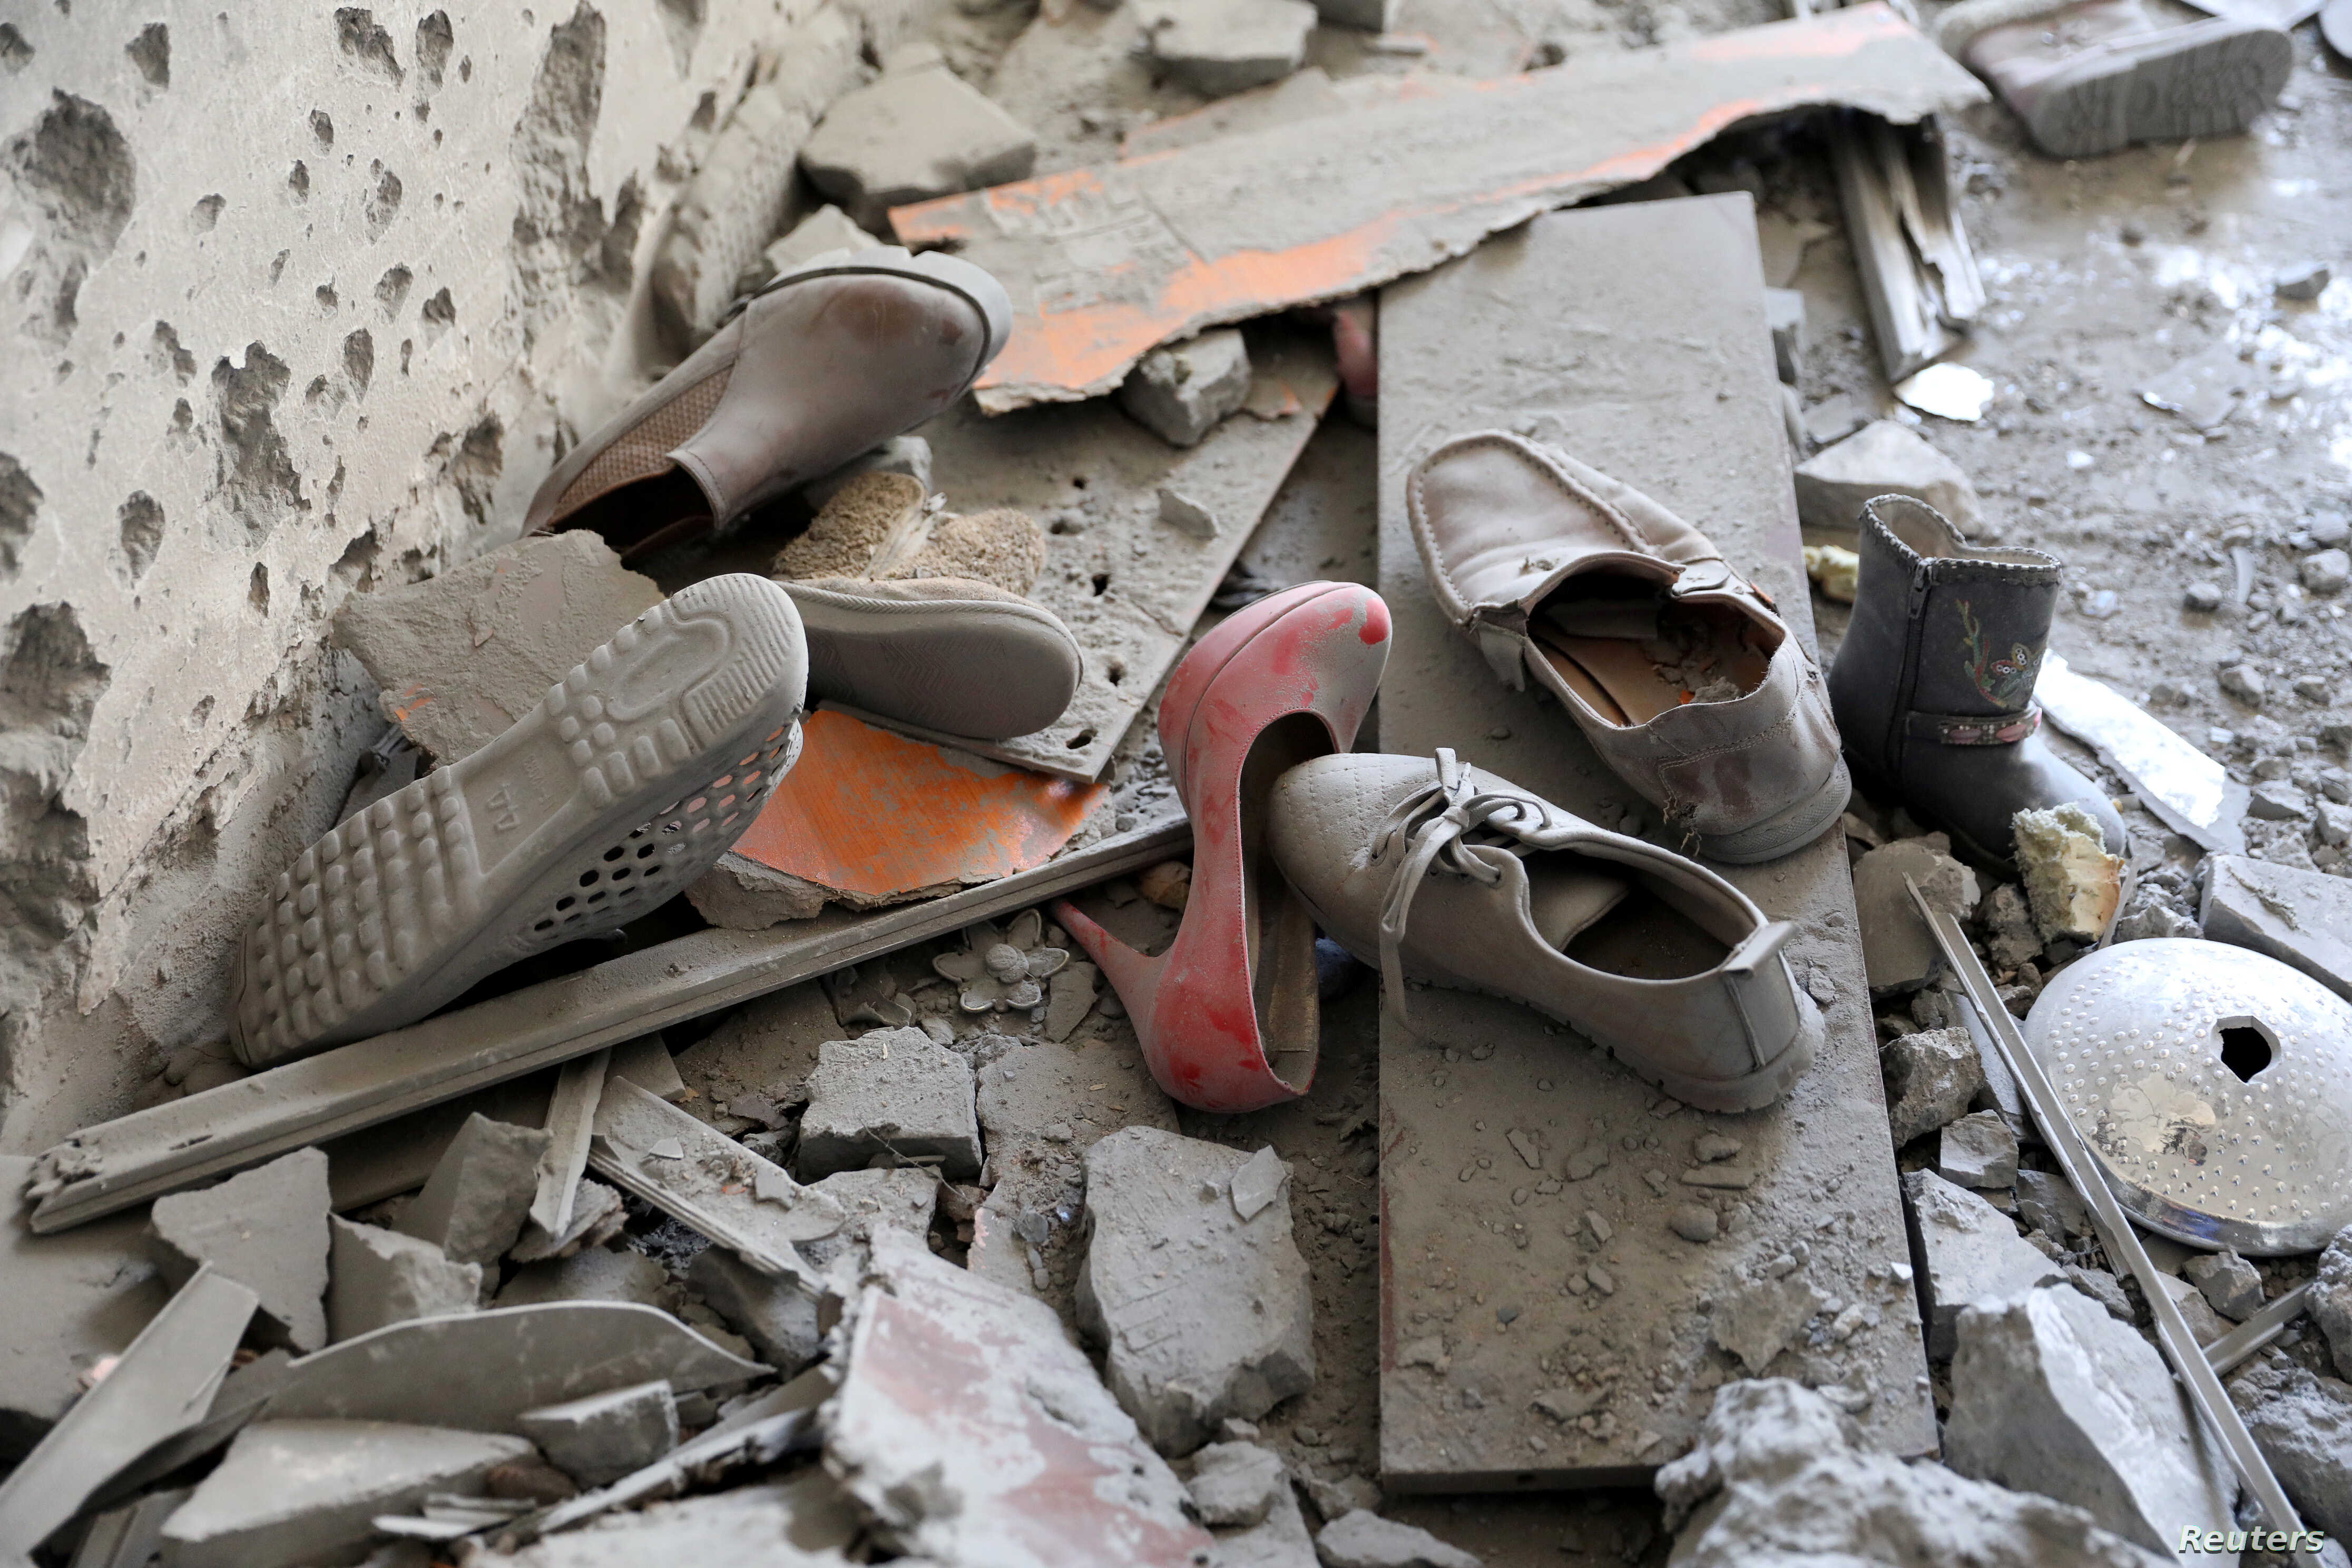 FILE - Shoes are pictured in a house damaged by shelling during the fighting between the eastern forces and internationally recognized government is pictured in Abu Salim in Tripoli, Libya, April 15, 2019.